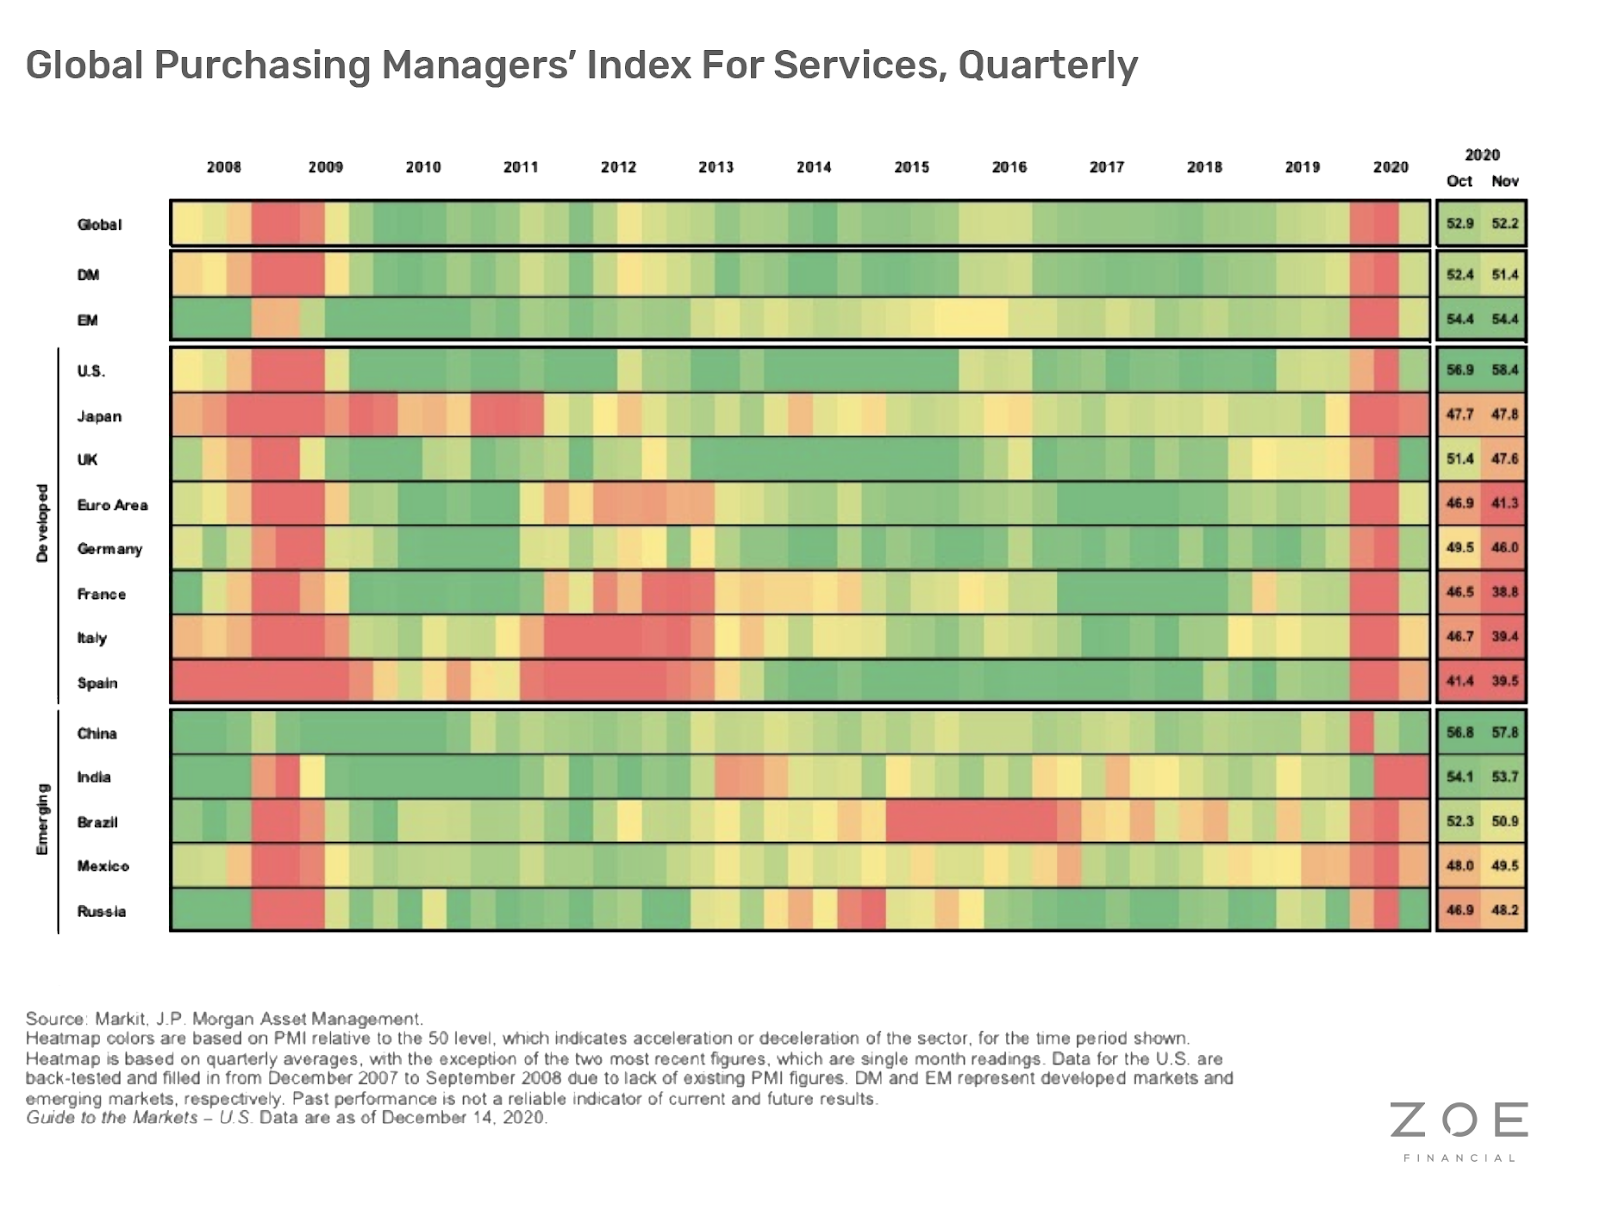 Global Purchasing managers' Index For Services, Quarterly